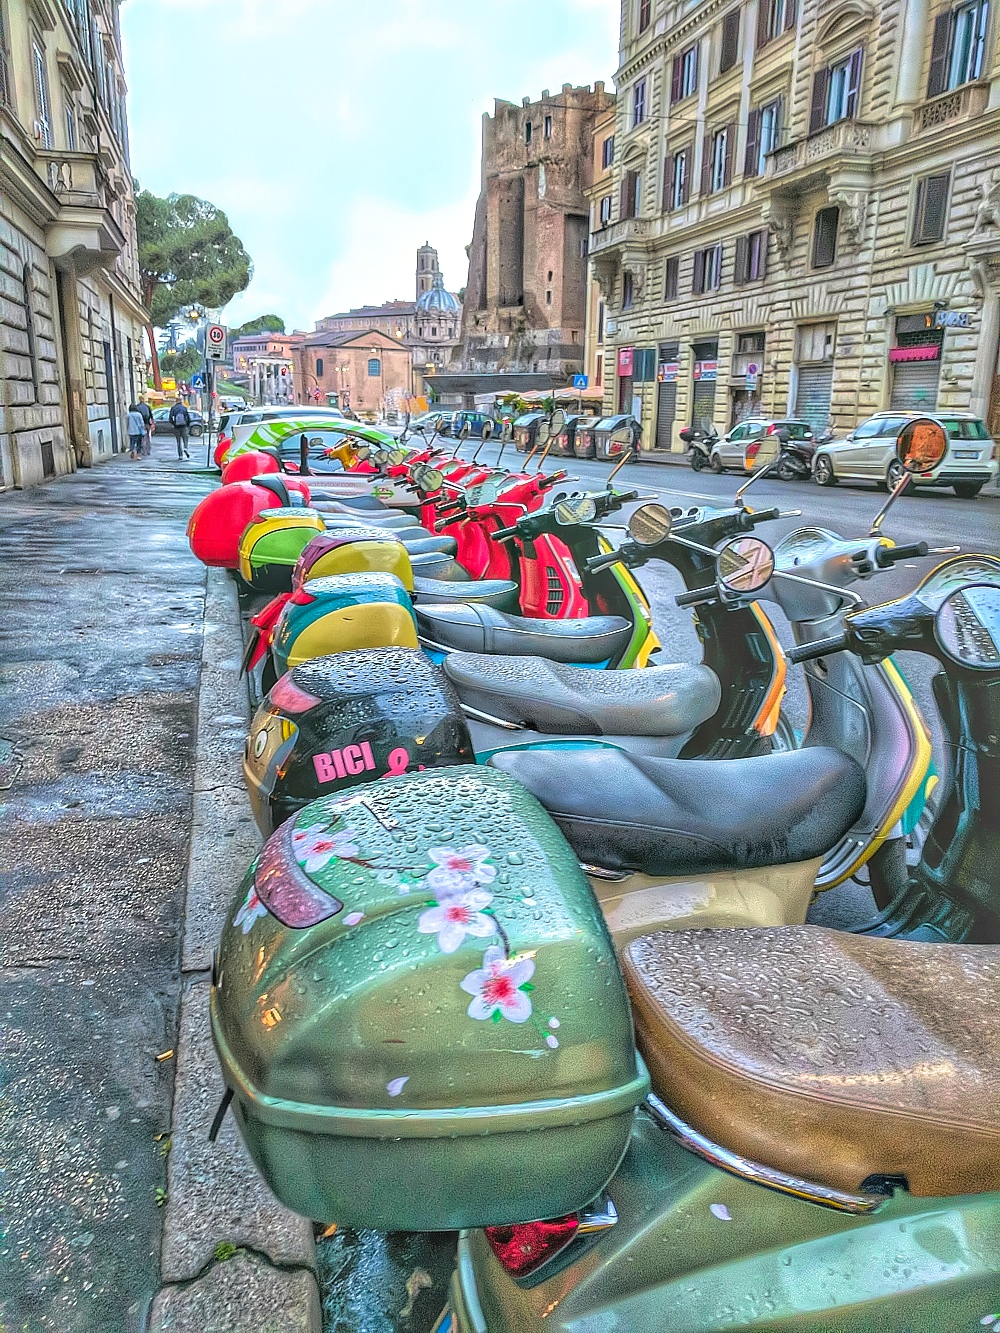 Scooter rental is Rome.